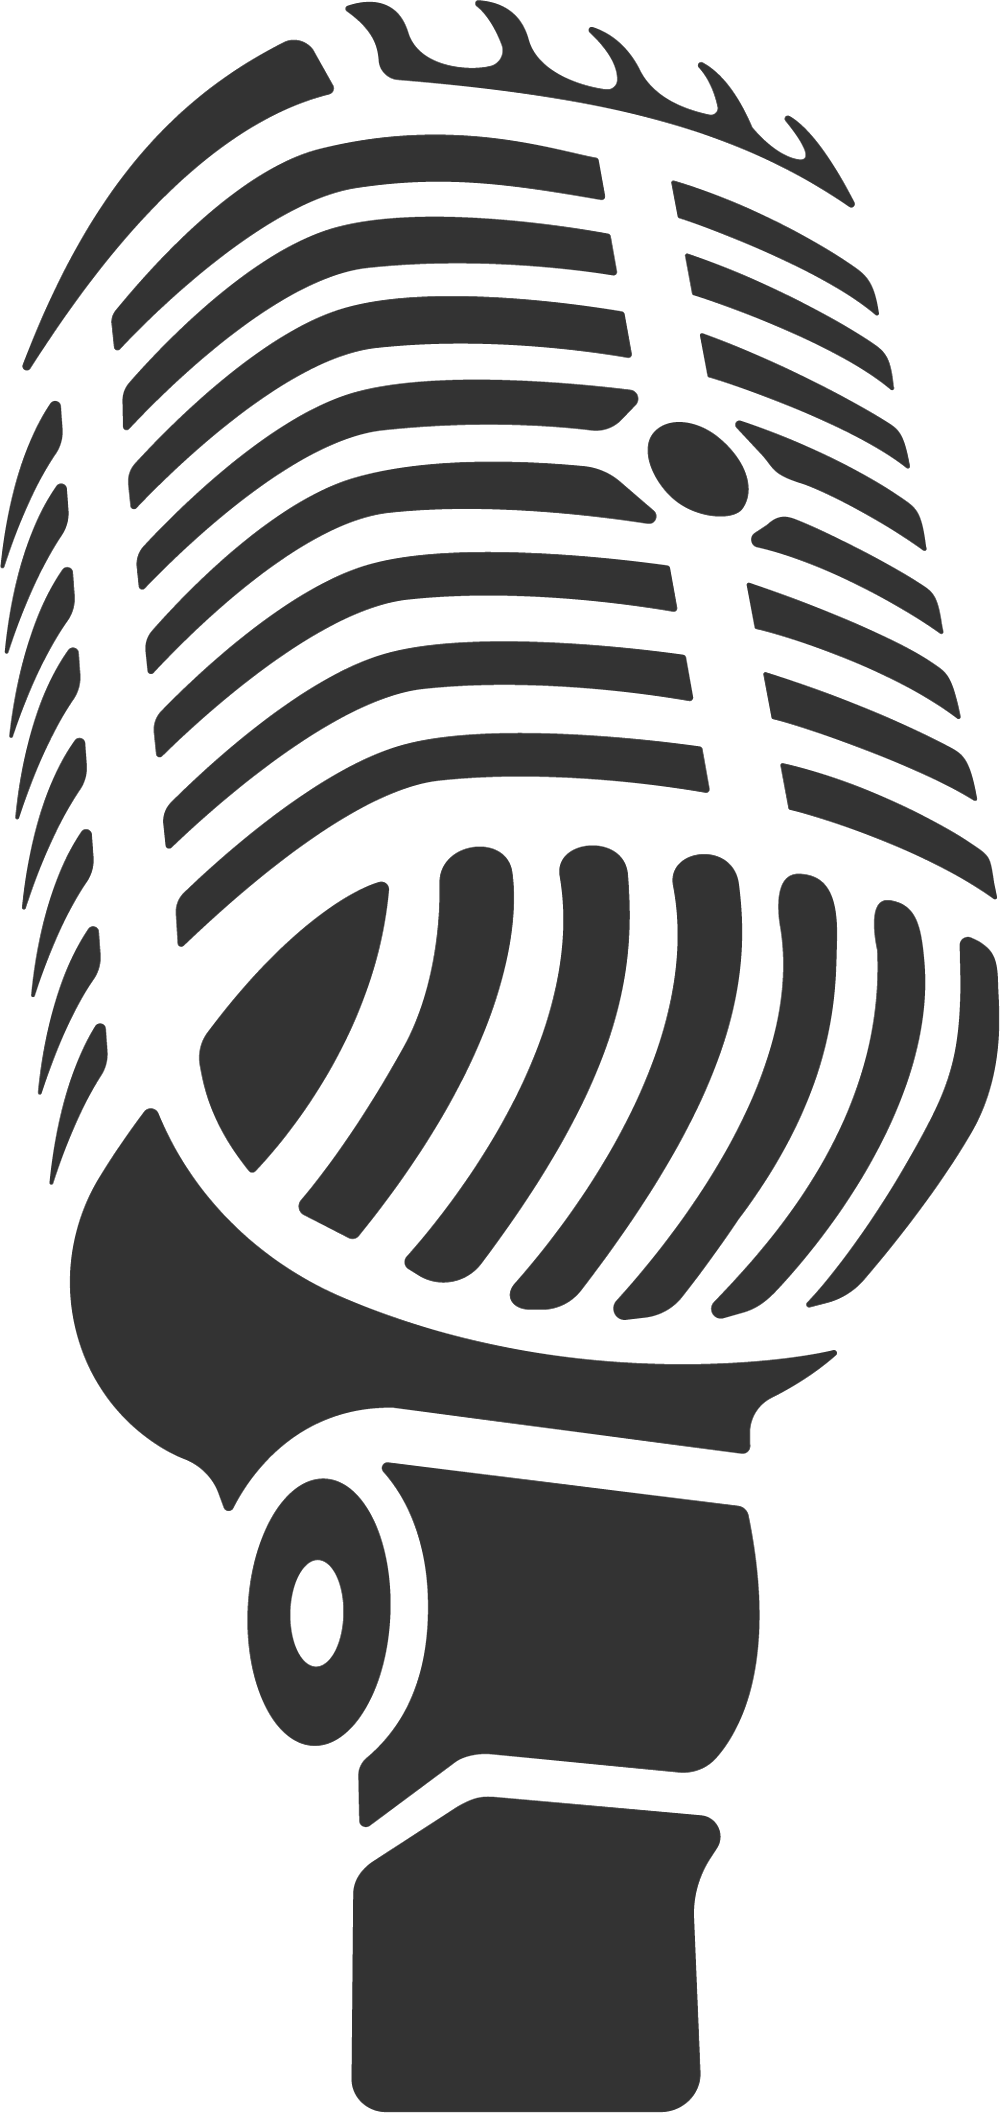 Microphone clipart audio. Recording studio sound and